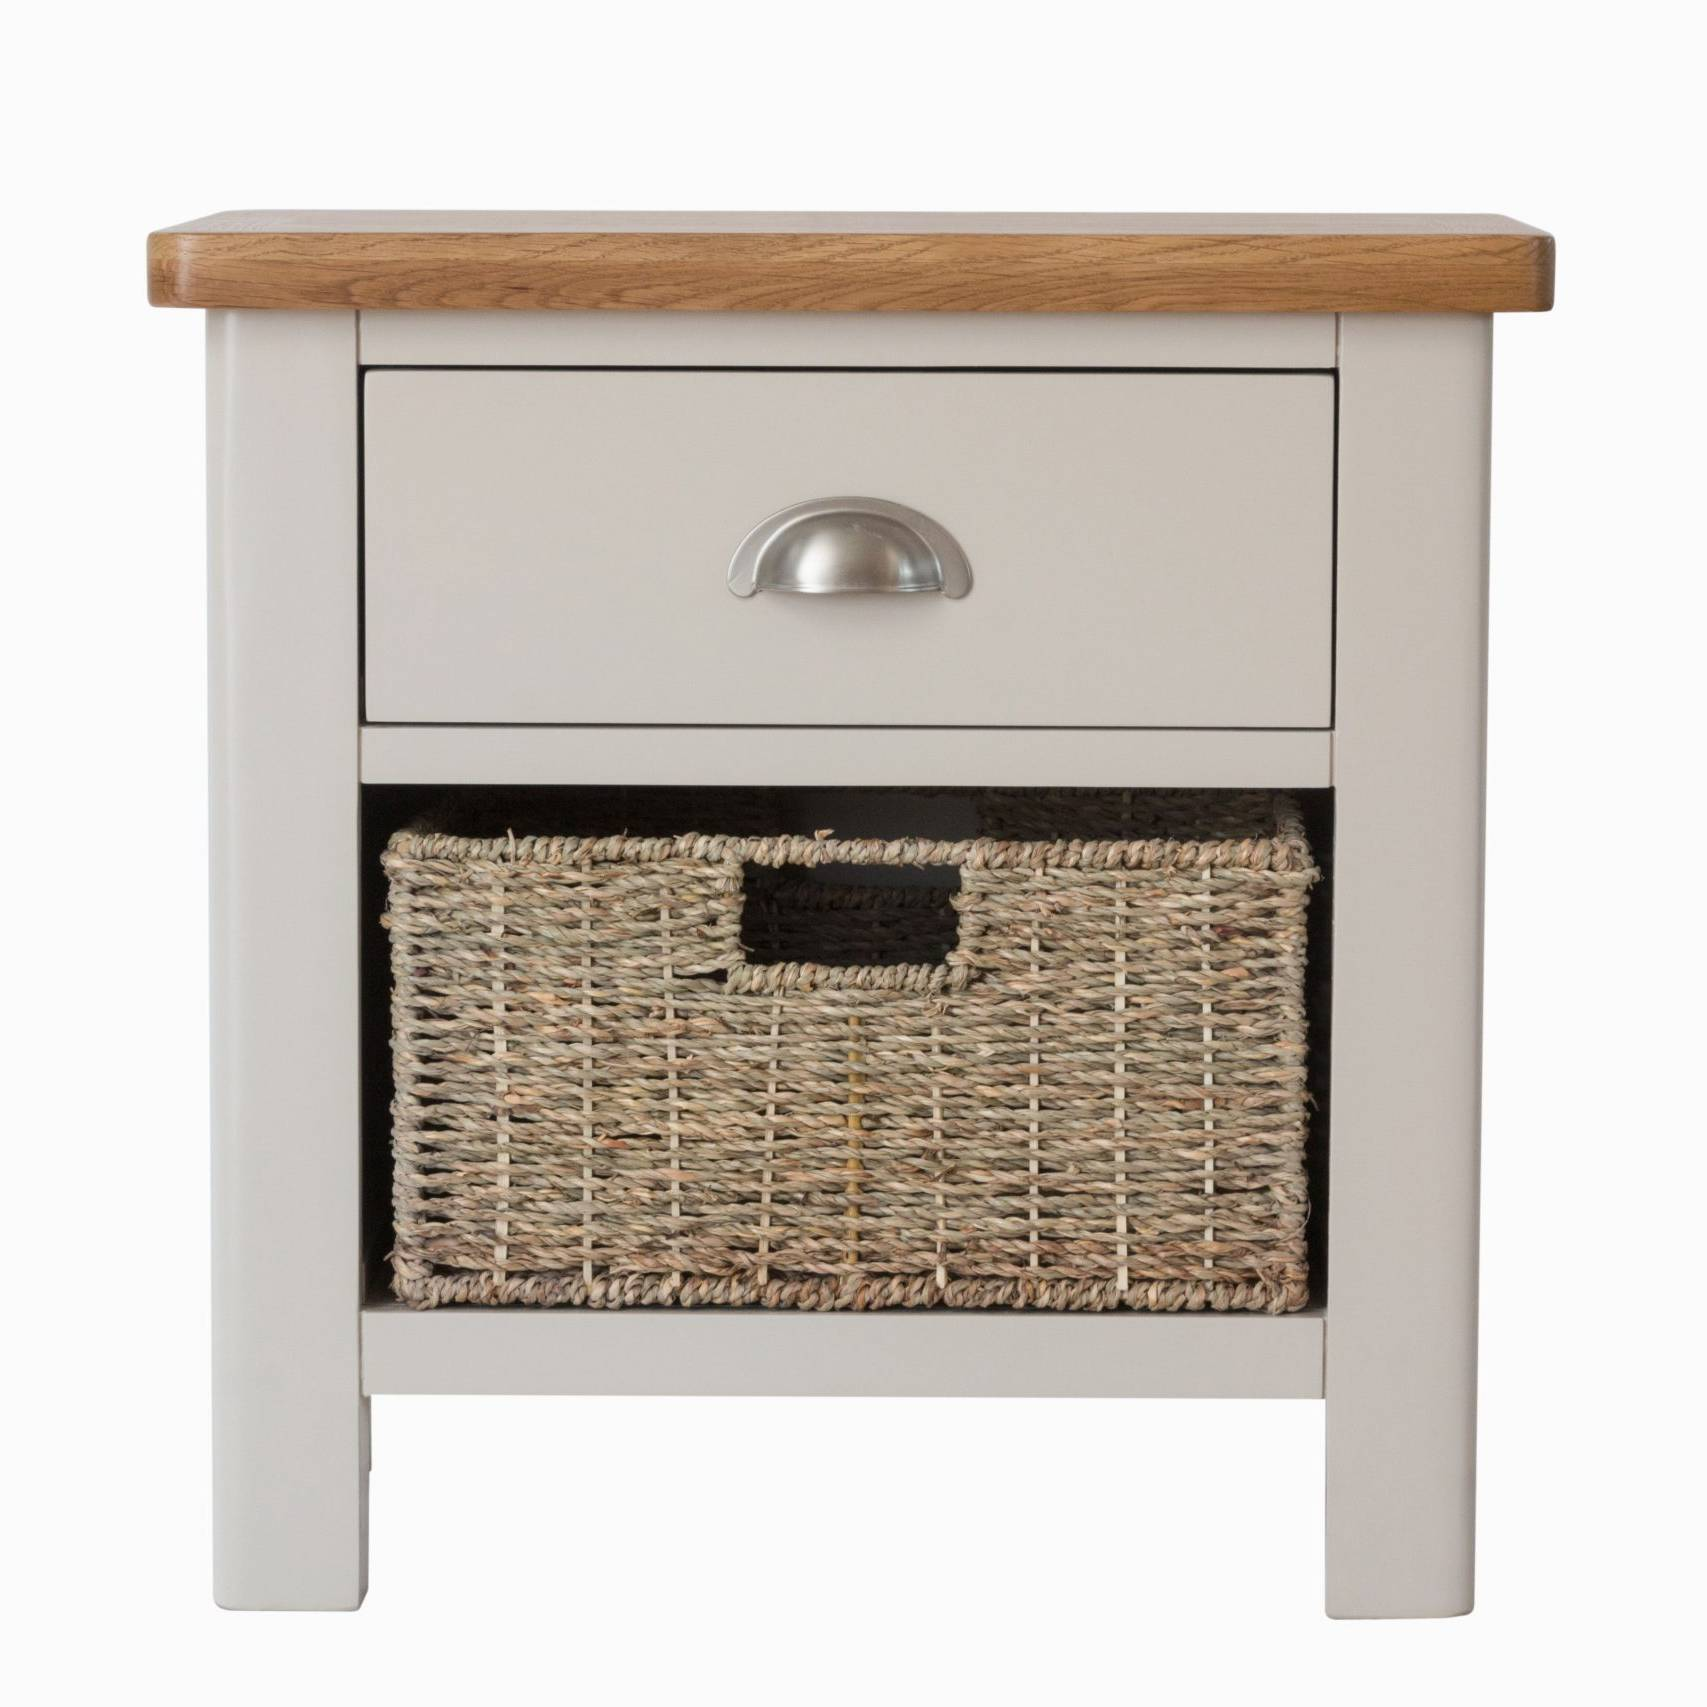 The Truffle - 1 Drawer 1 Basket Cabinet